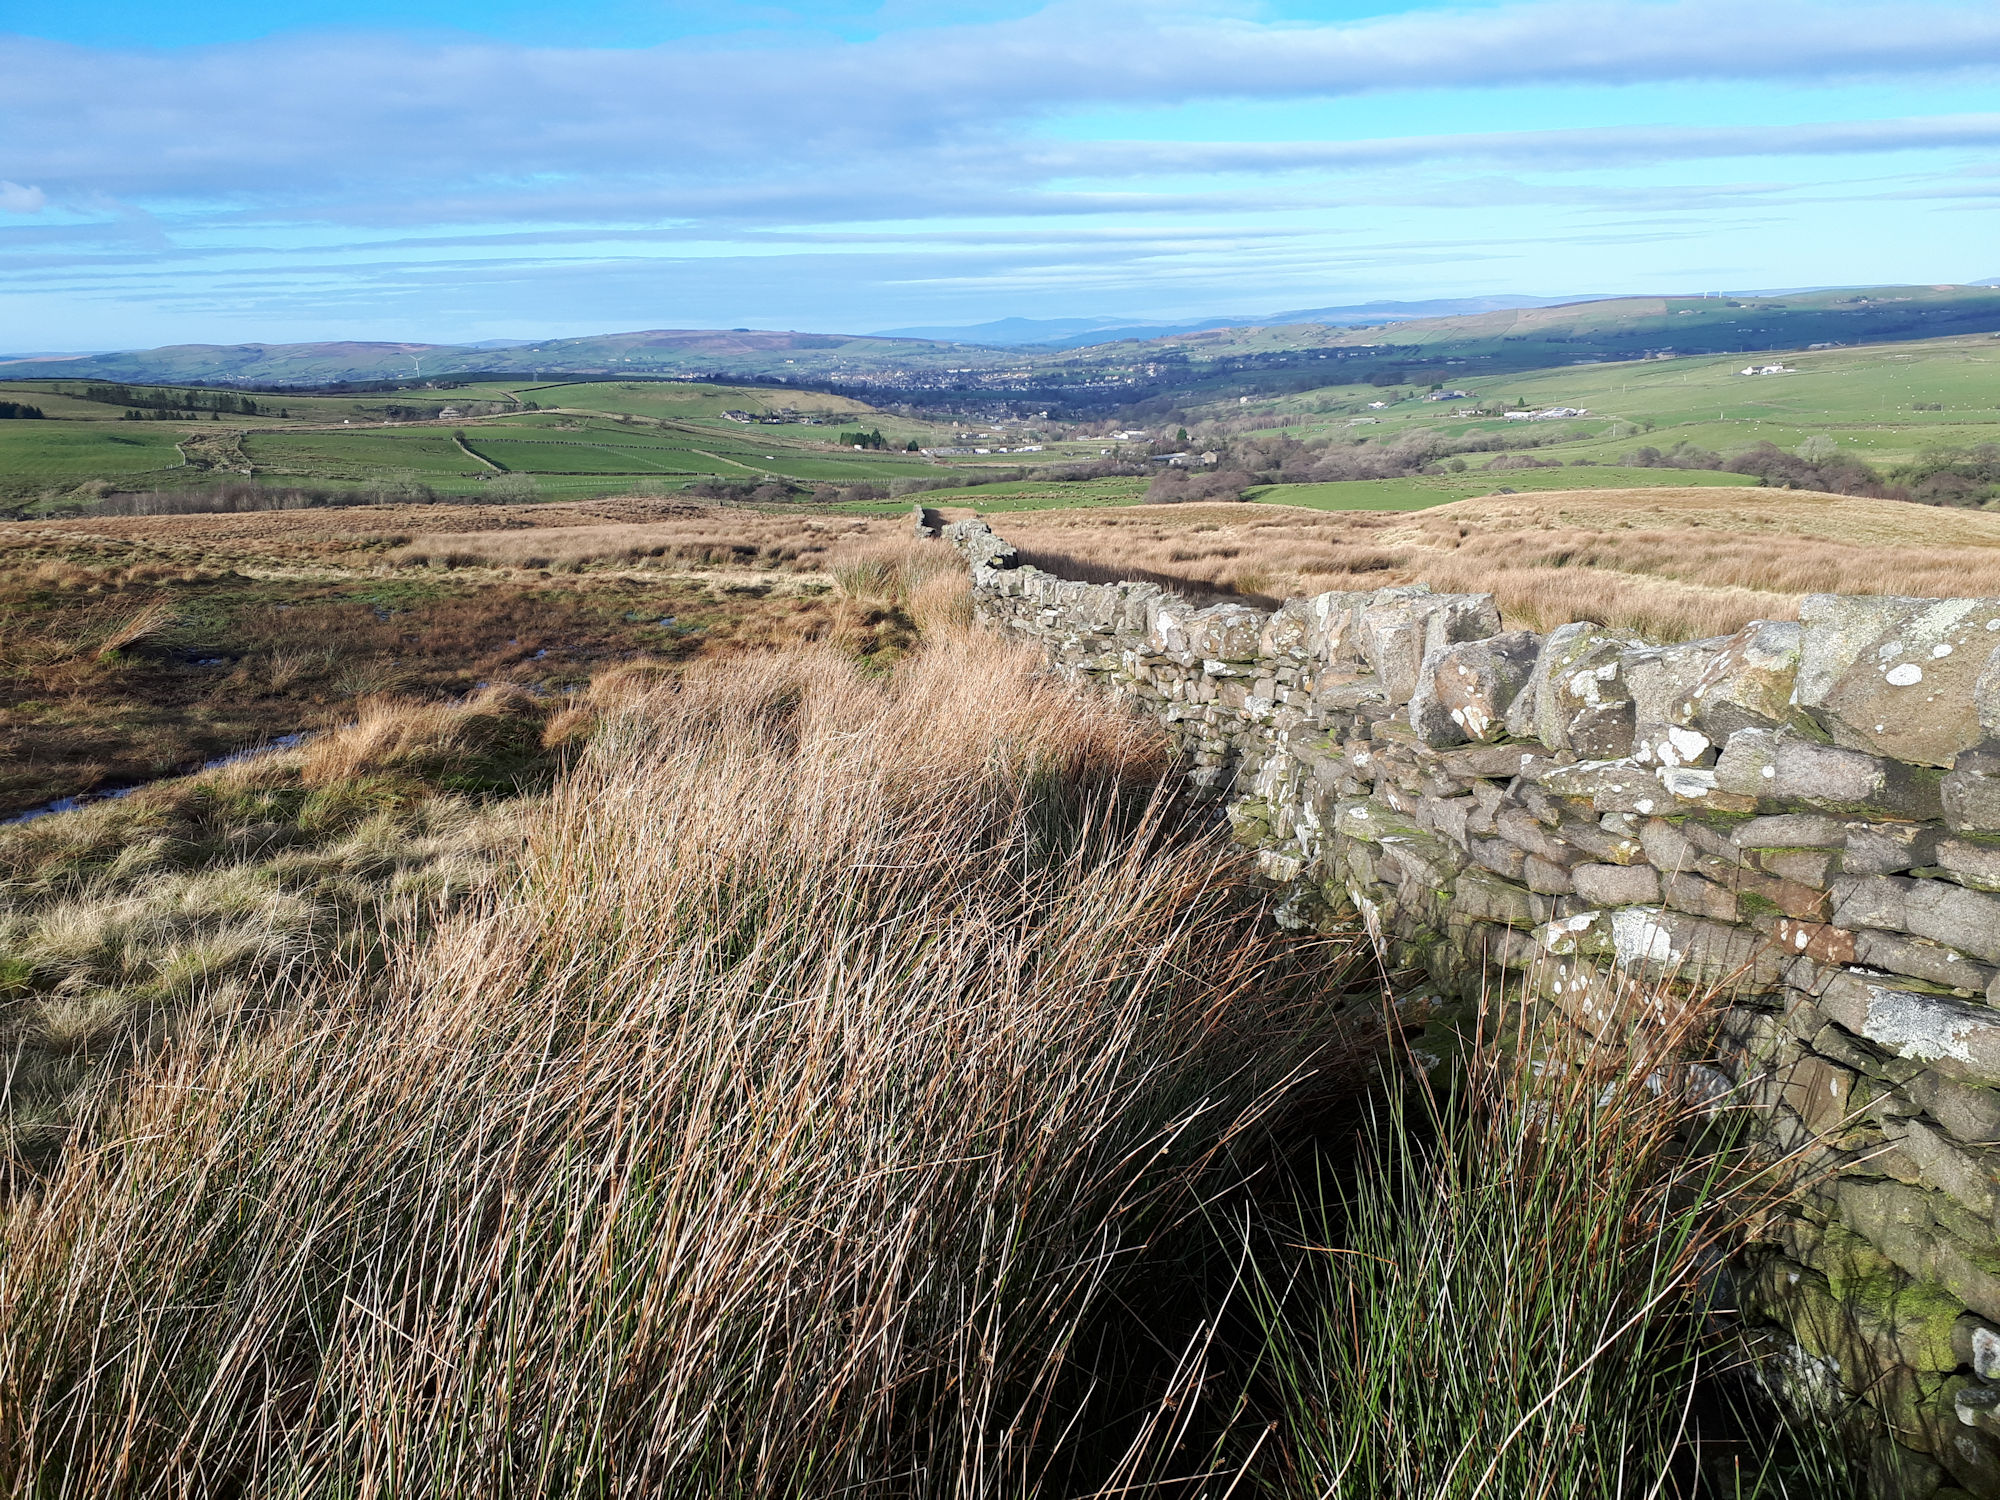 Looking towards the Dales